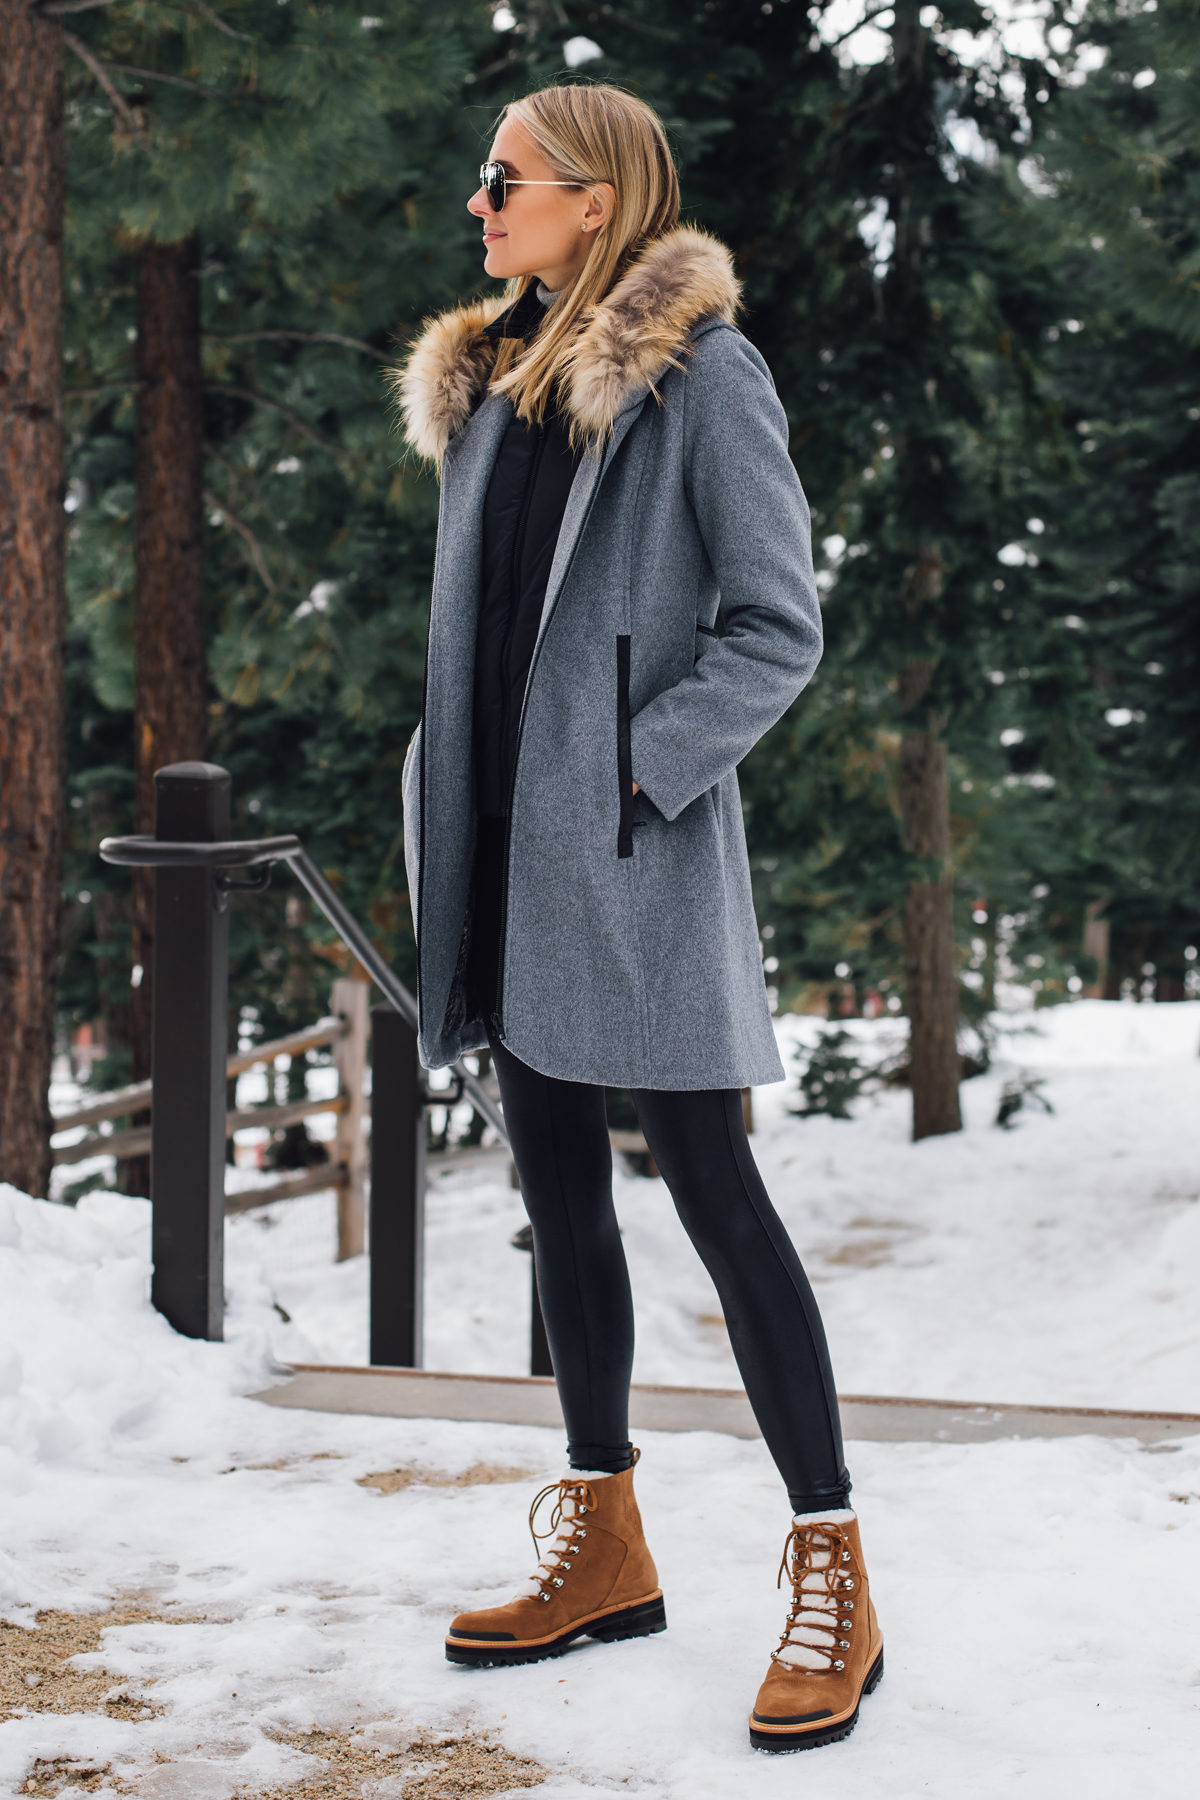 Blonde Woman Wearing Grey Wool Coat with Faux Fur Hood Spanx Black Faux Leather Leggings Brown Shearling Booties Outfit Fashion Jackson San Diego Fashion Blogger Lake Tahoe Winter Outfit